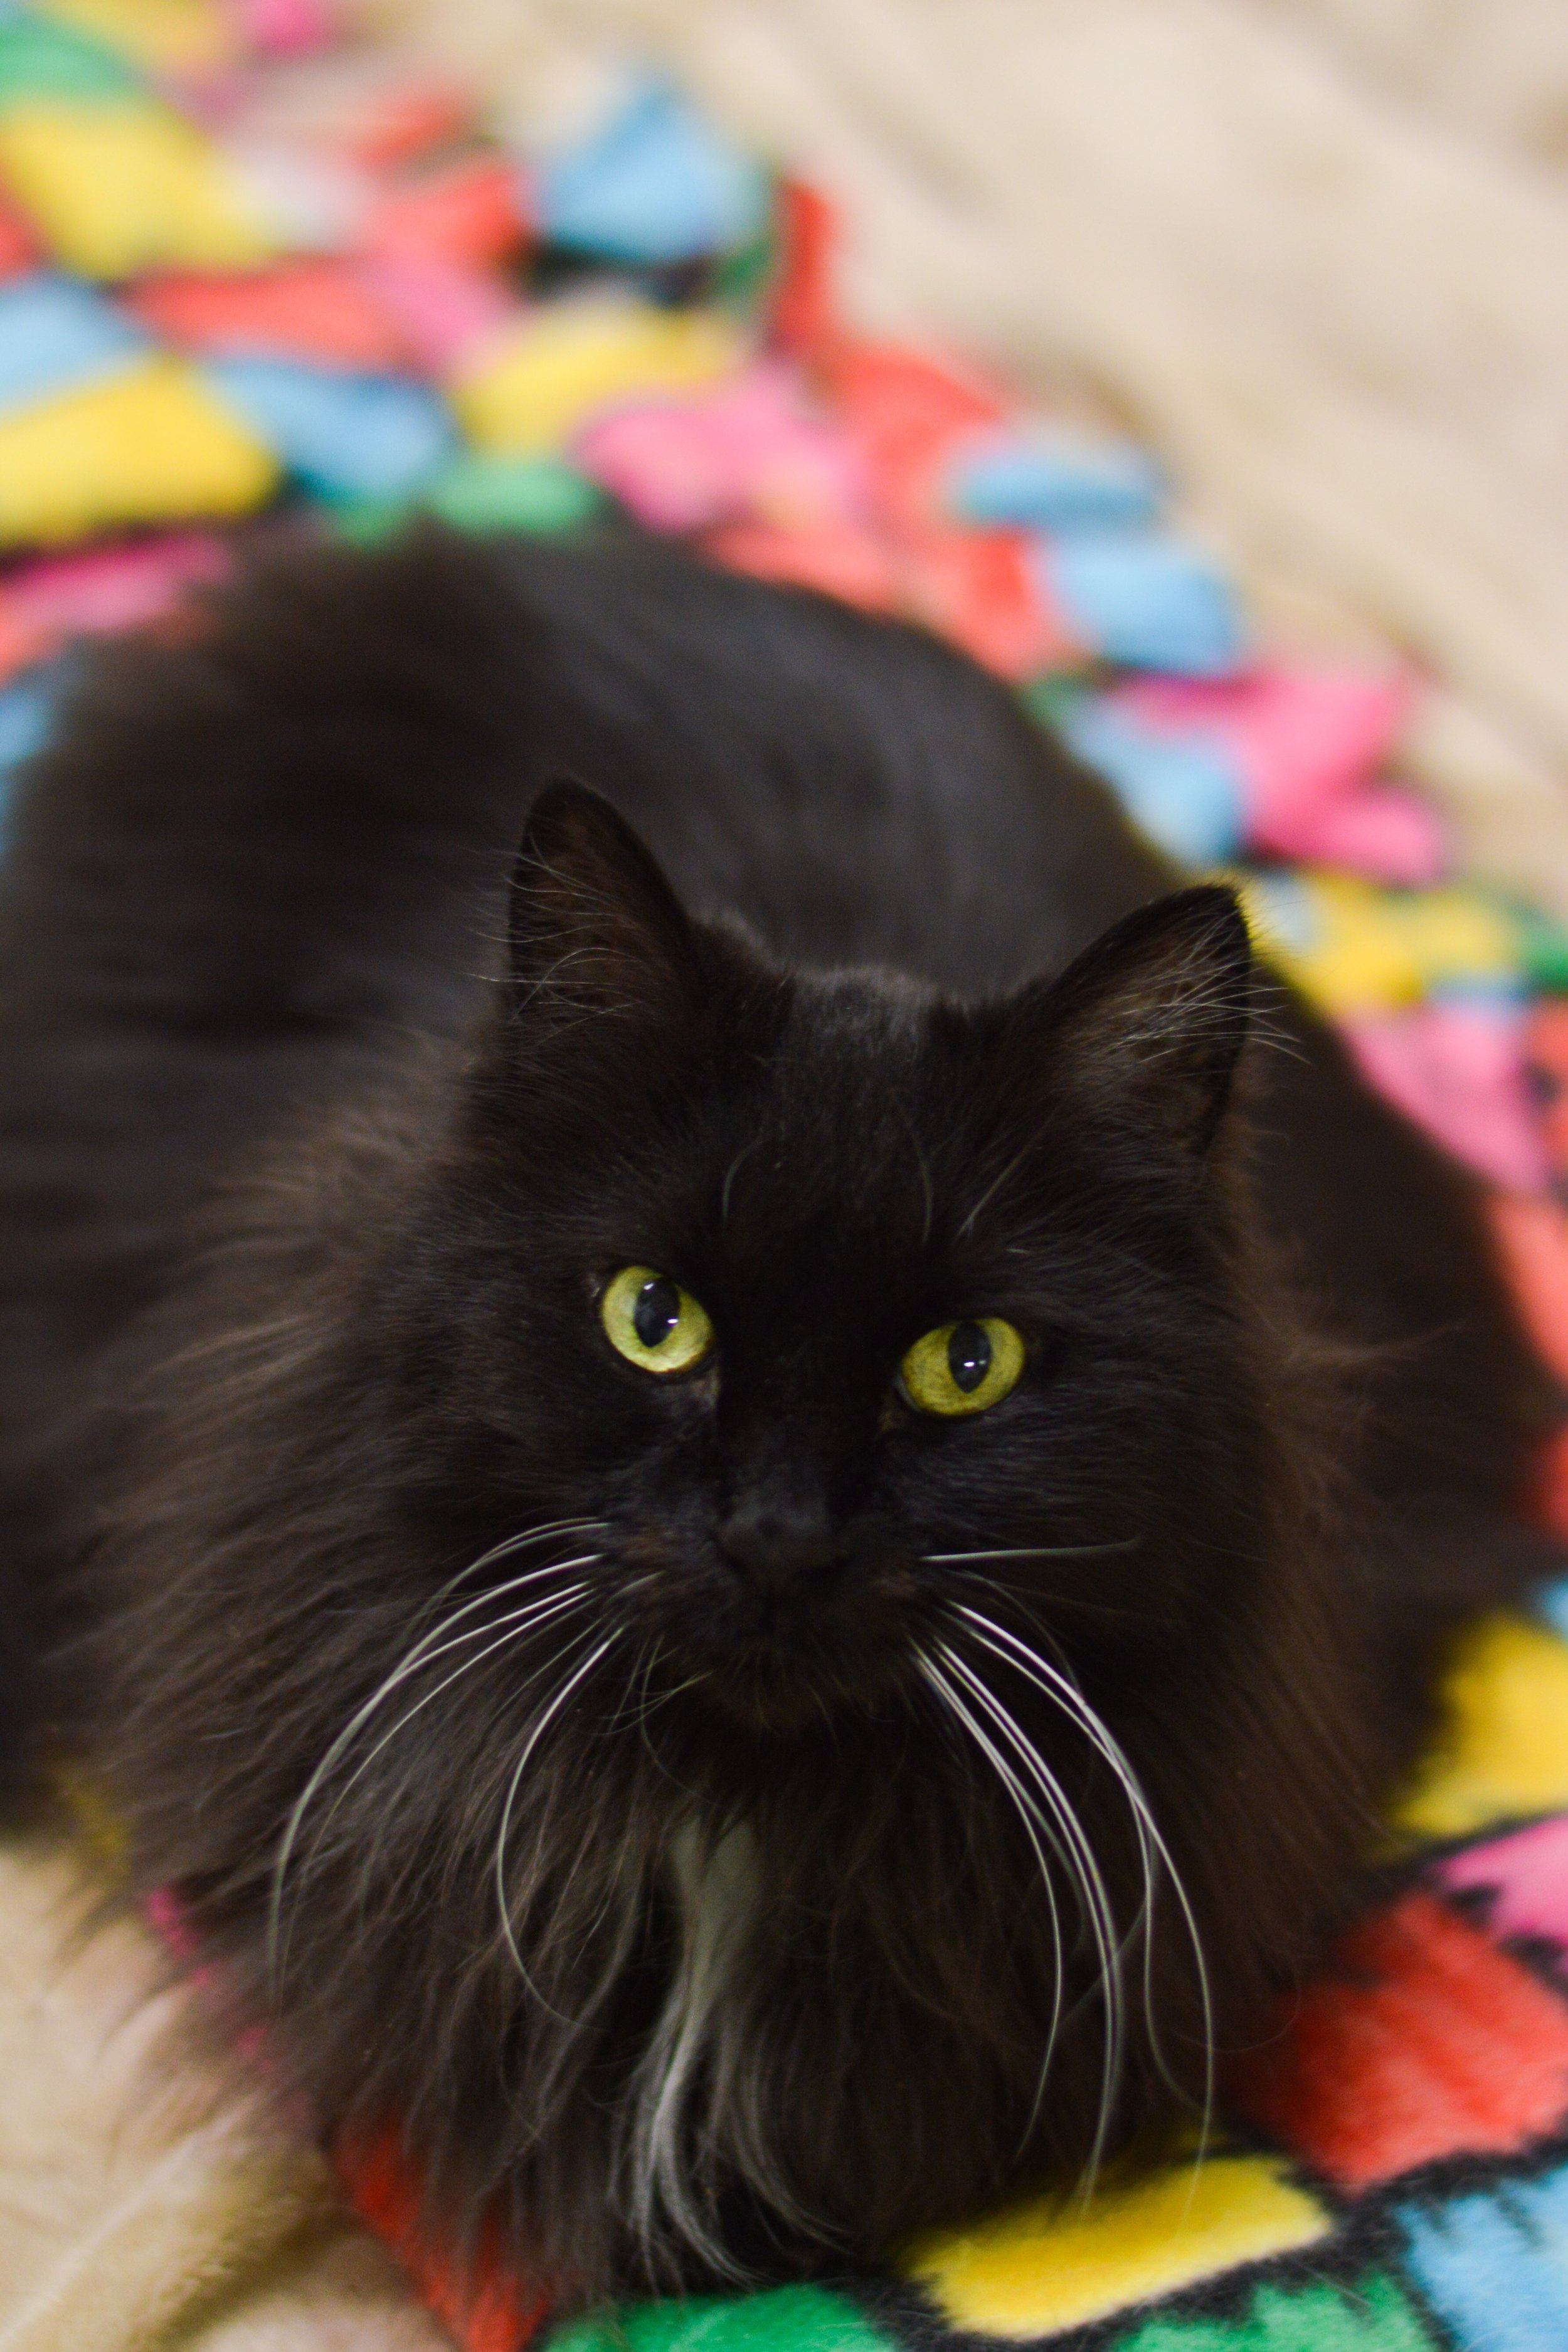 - Ebony is our oldest cat at 20 years of age. She is hyperthyroid and also has inflammatory bowel disease requiring daily medication and moitoring.